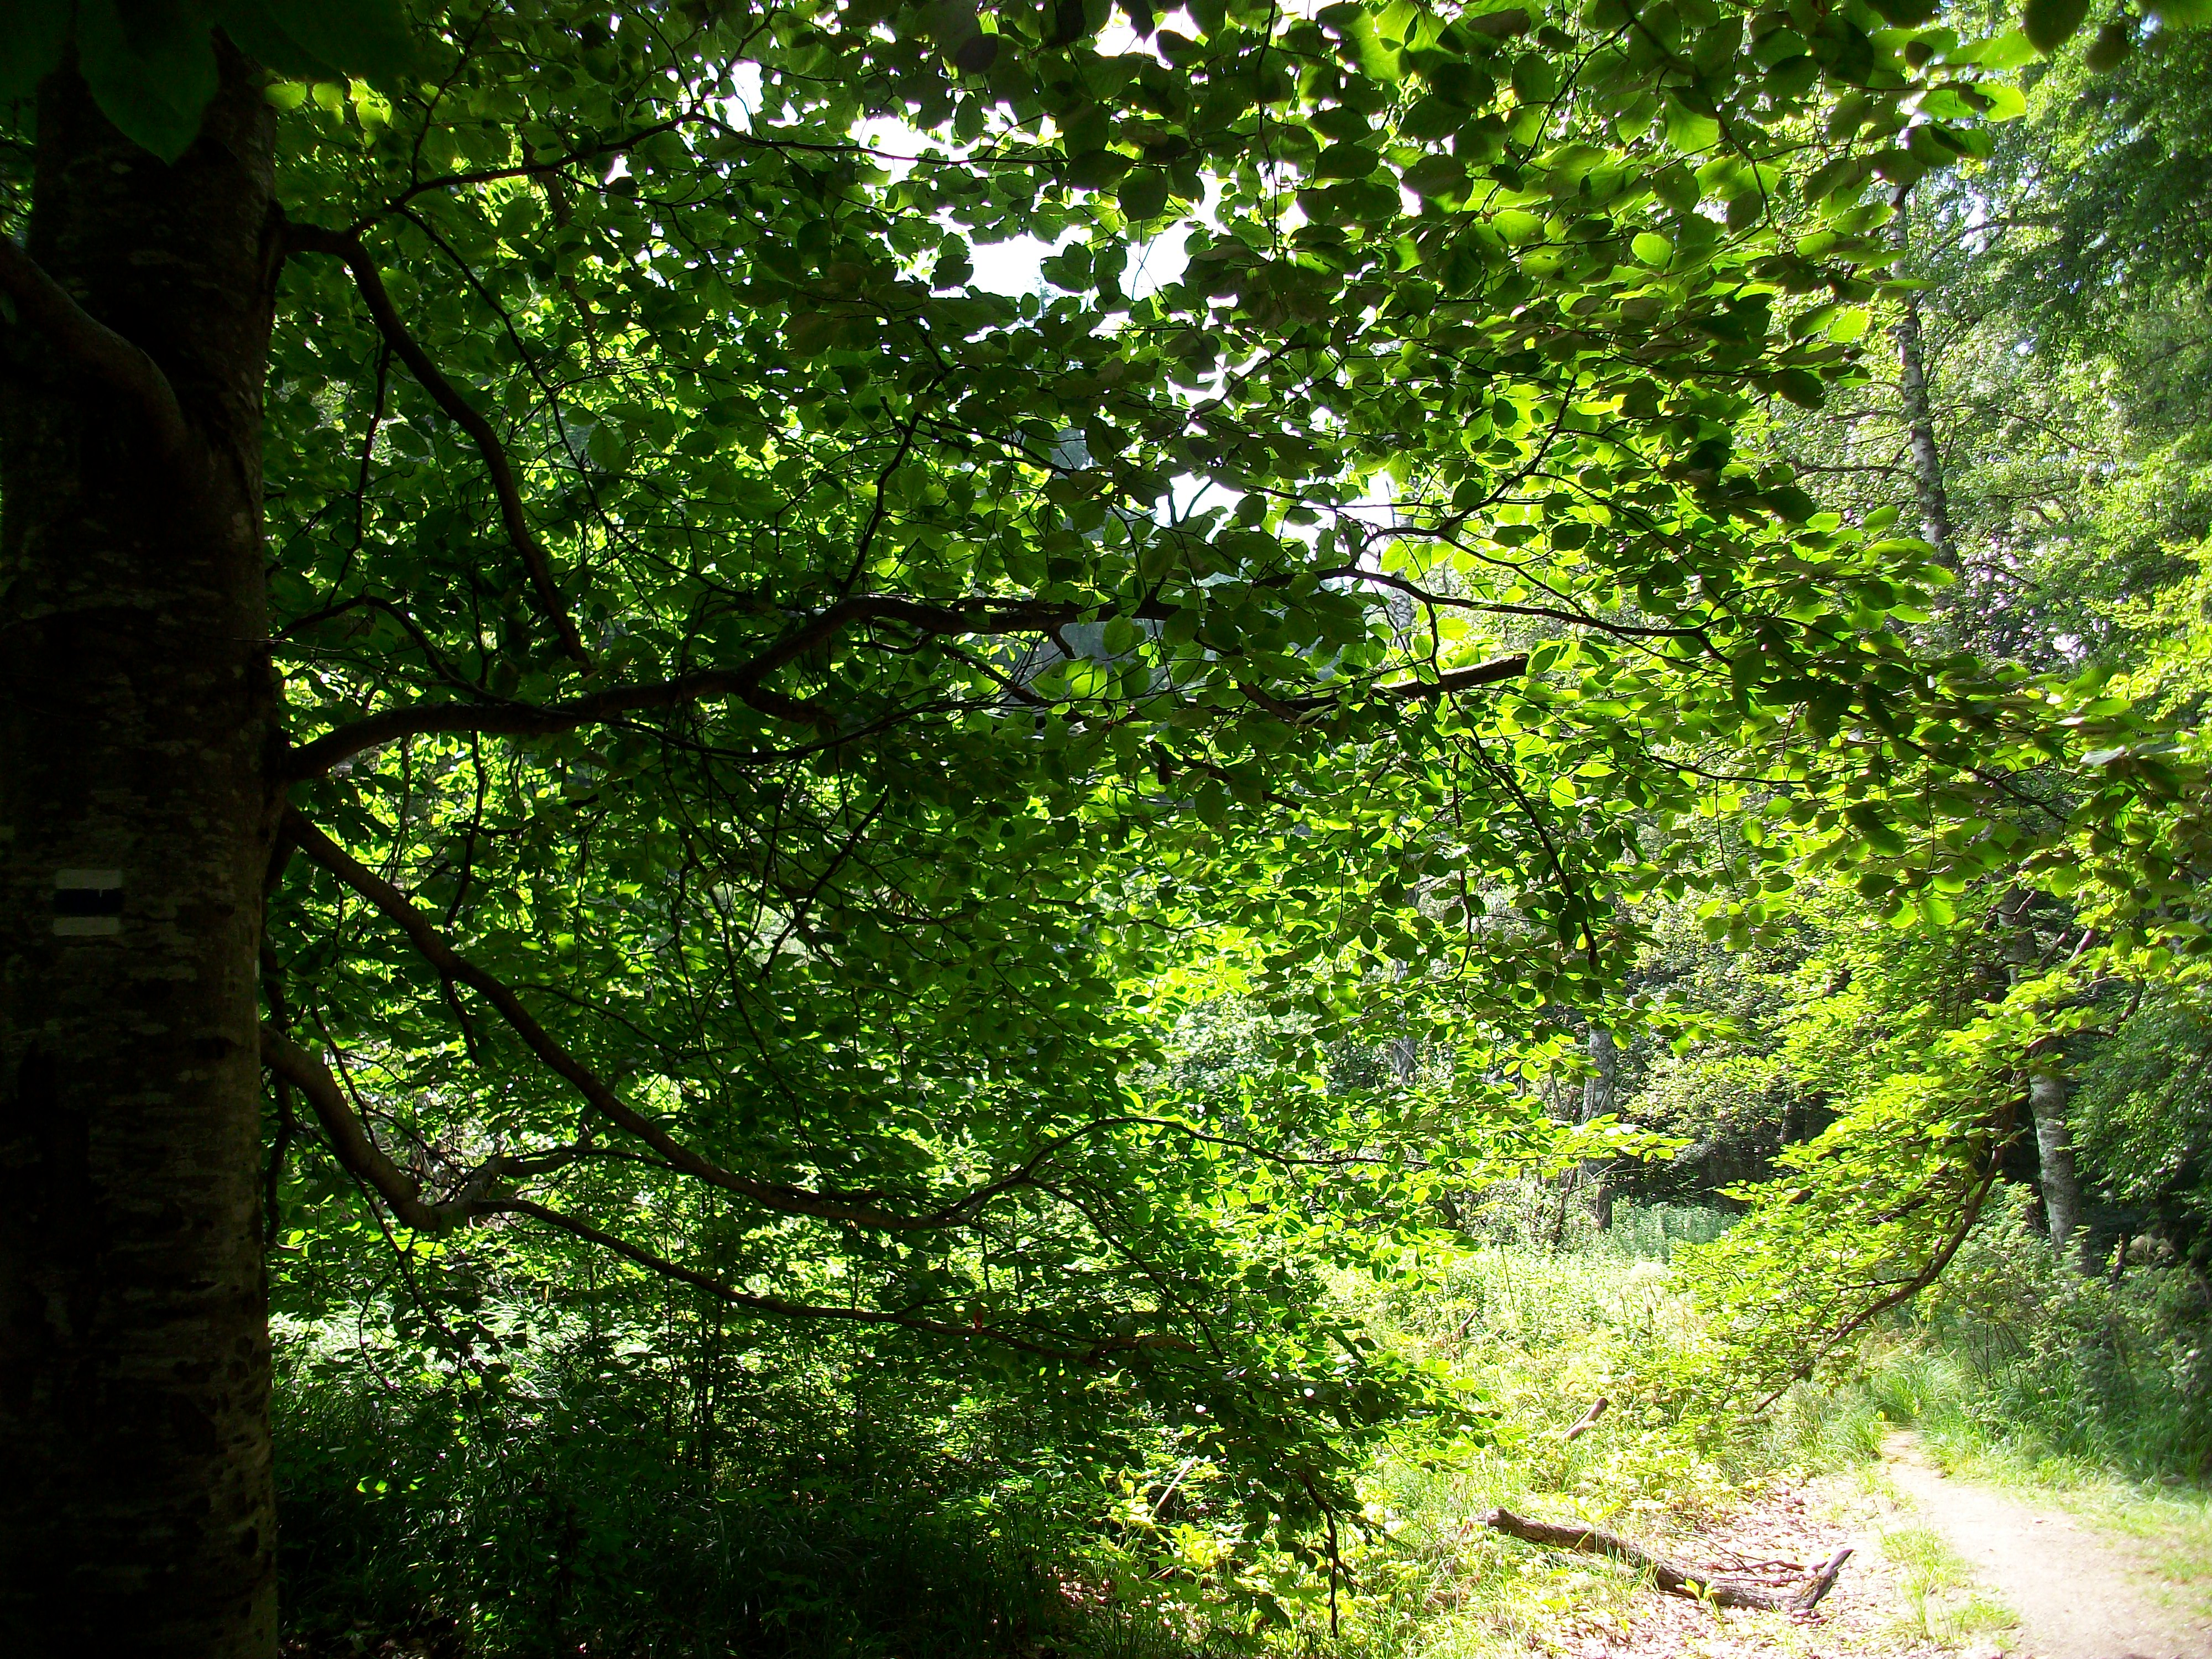 Dappled Shade, sunlight, trees, vitosha, shadow, HQ Photo